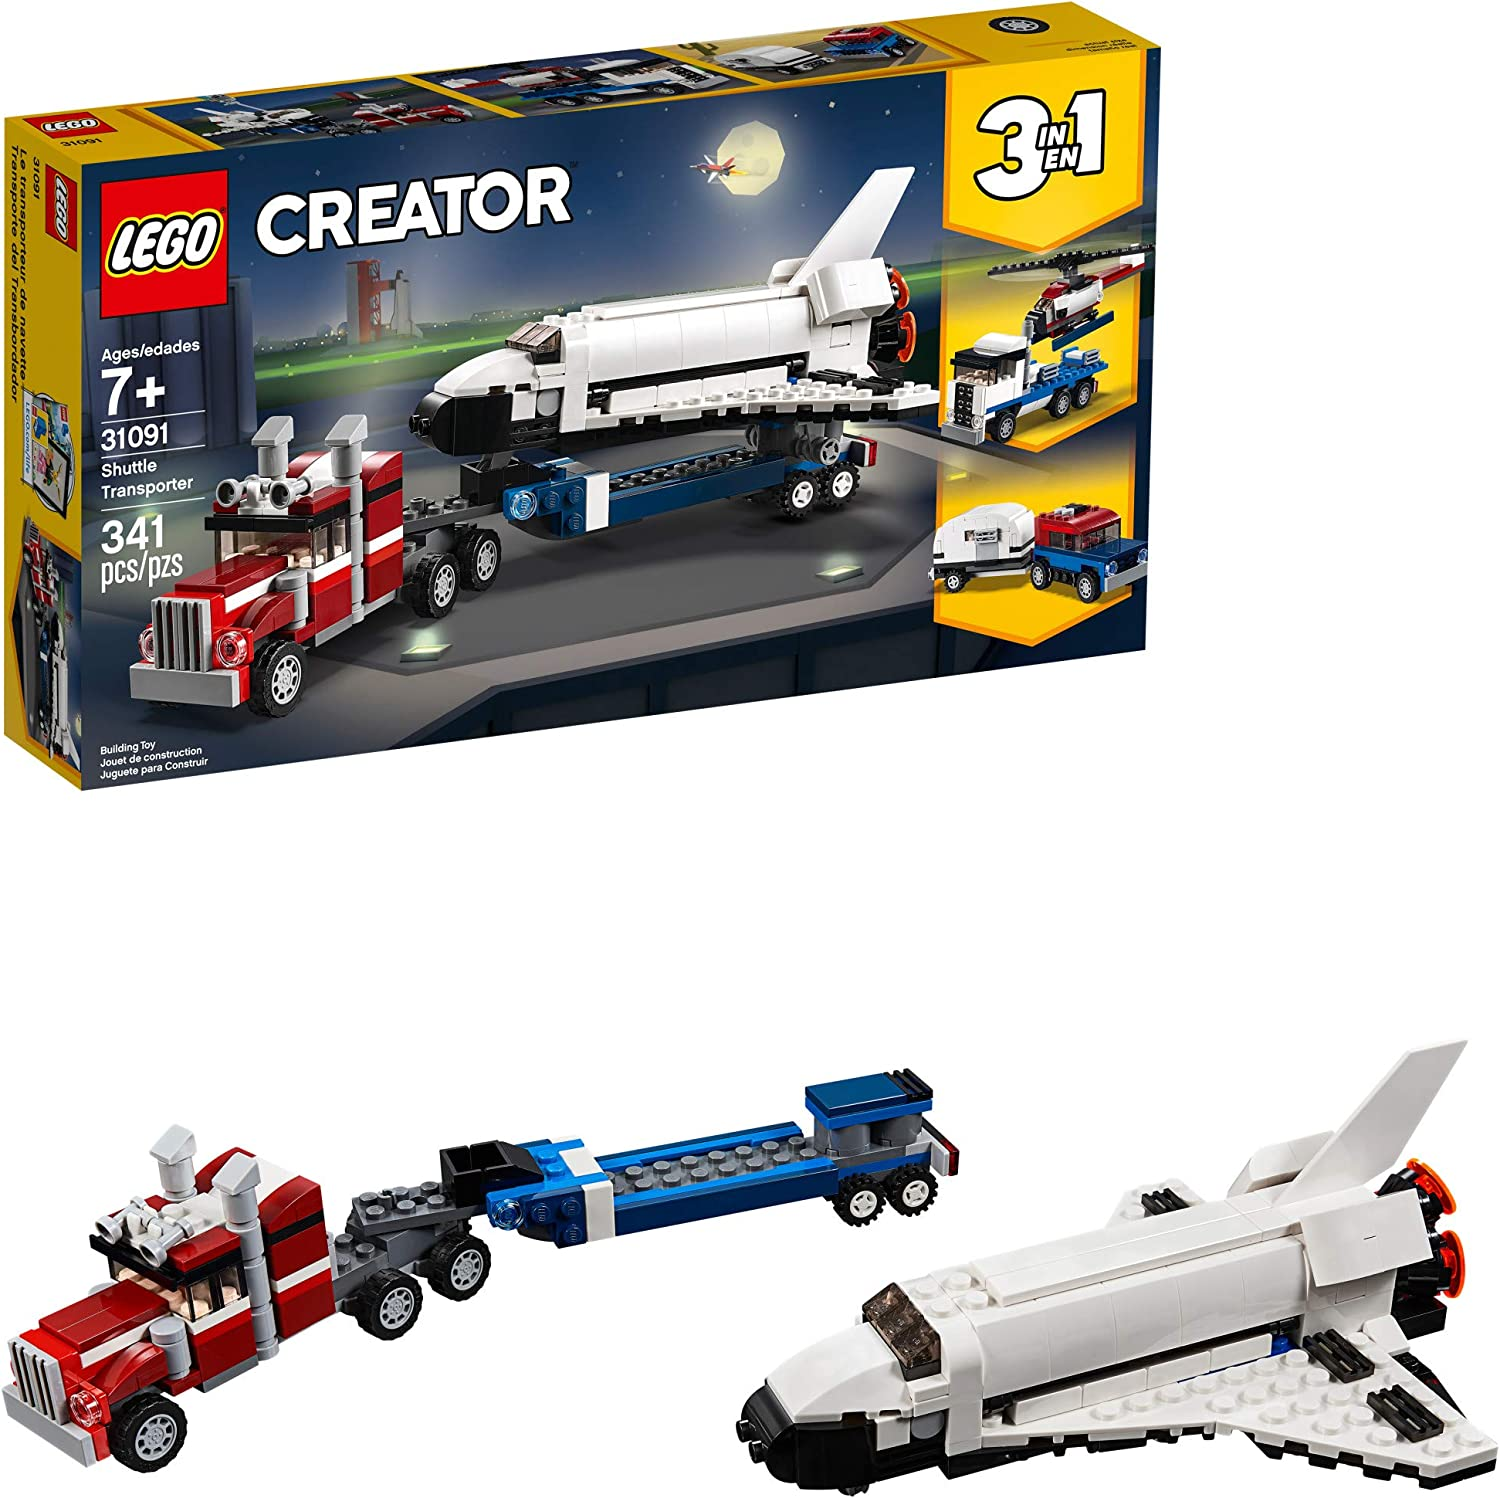 LEGO Creator 3in1 Shuttle Transporter 31091 Building Kit, 2019 (341 Pieces)